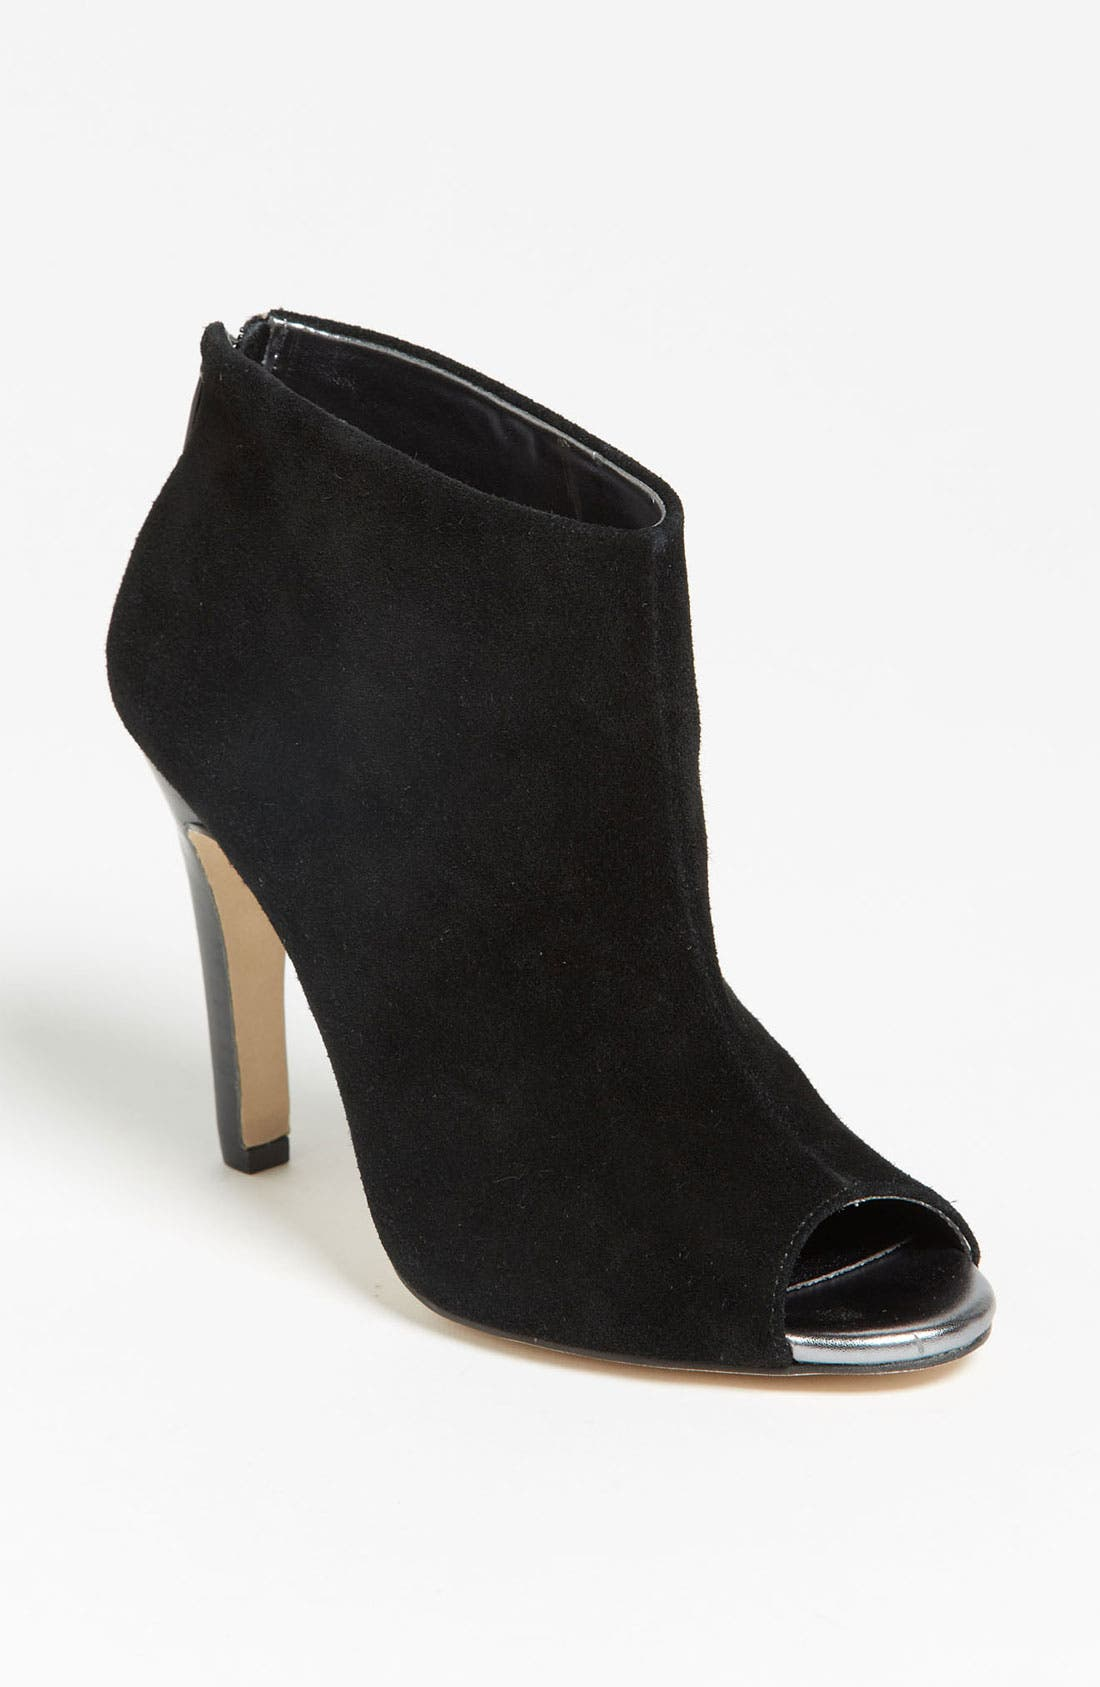 Main Image - Julianne Hough for Sole Society 'Angela' Bootie